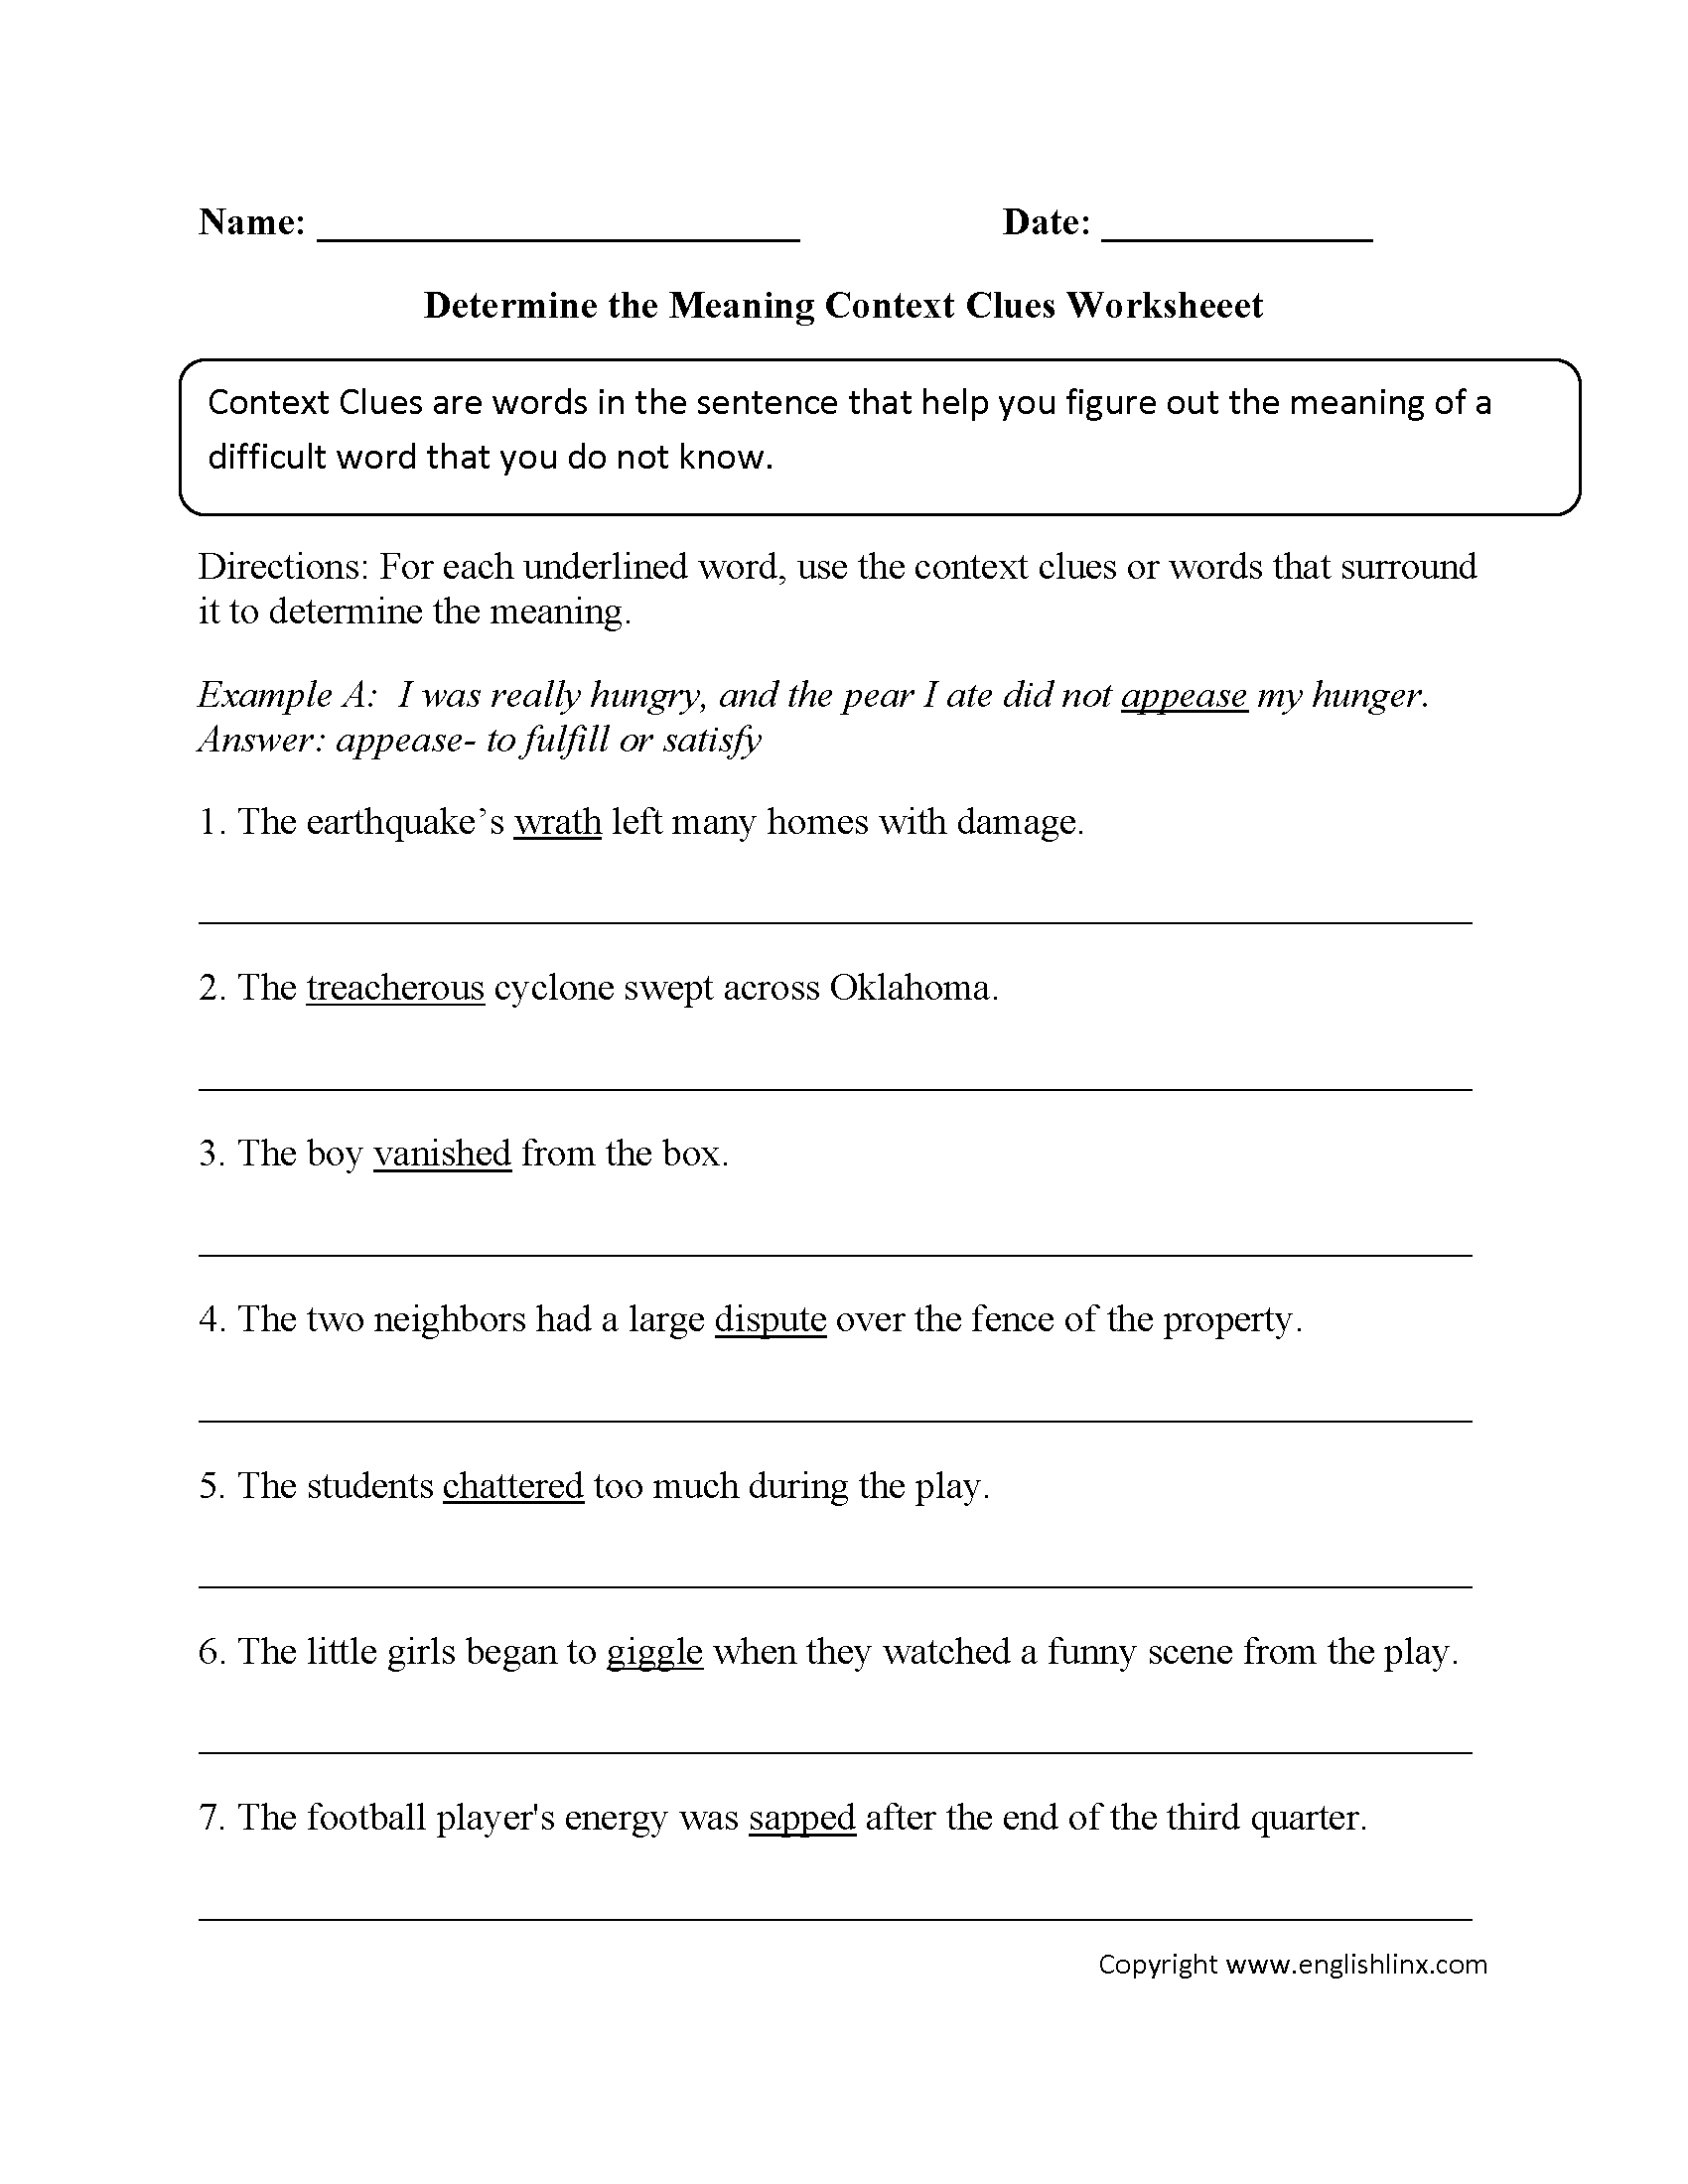 Determine The Meaning Context Clues Worksheet